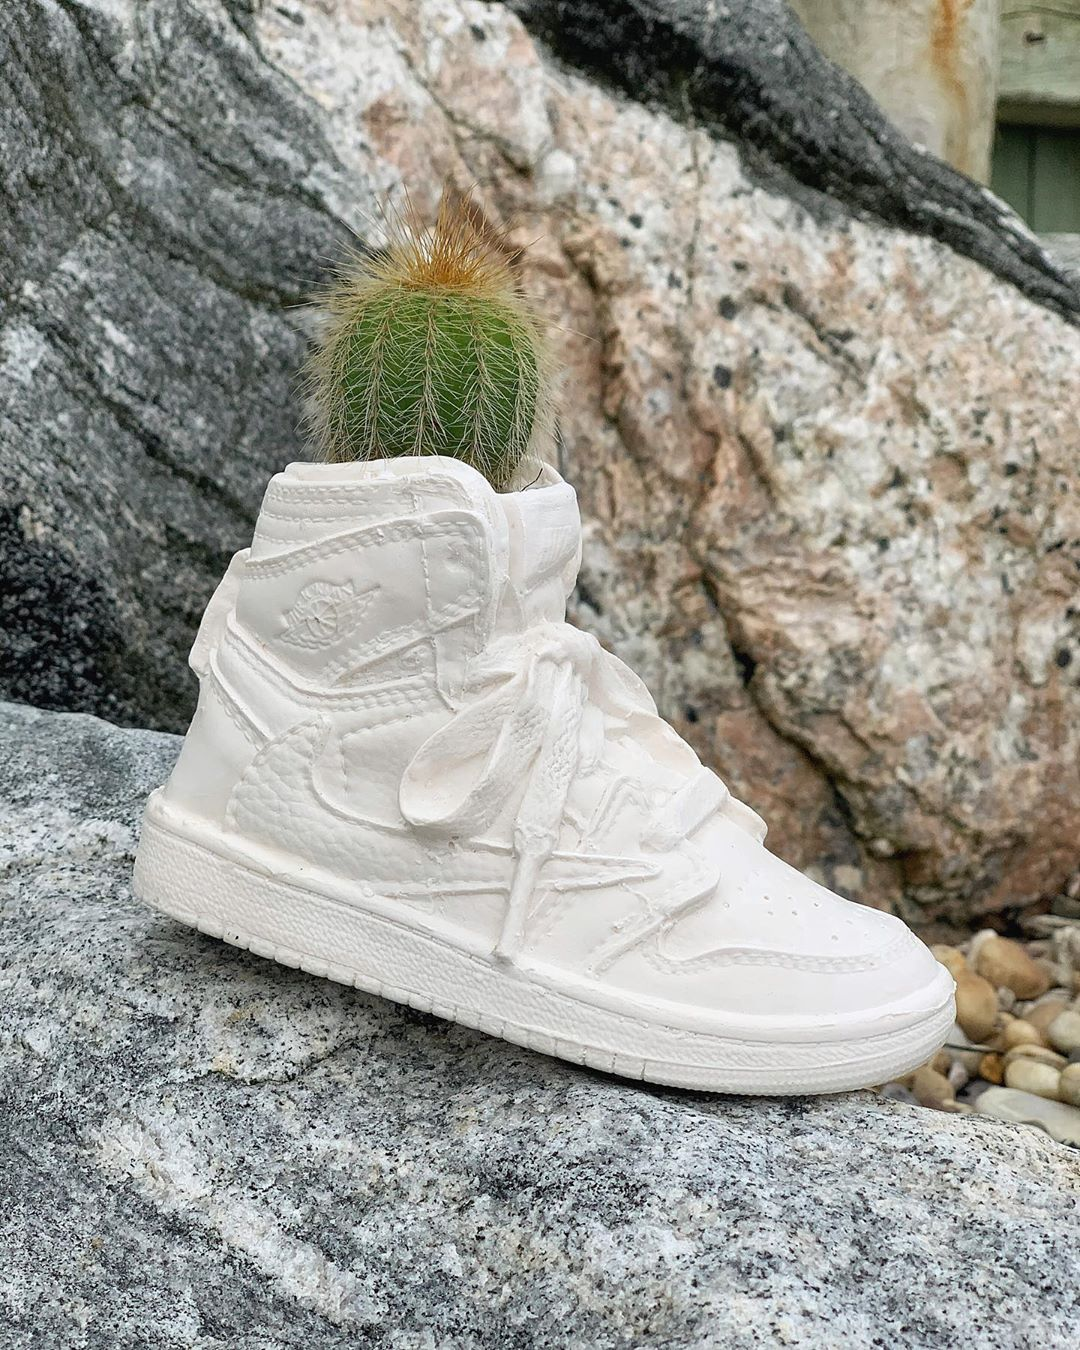 Bodega Rose is Raffling a Jordan 1 Planter for the COVID Bail Out Fund